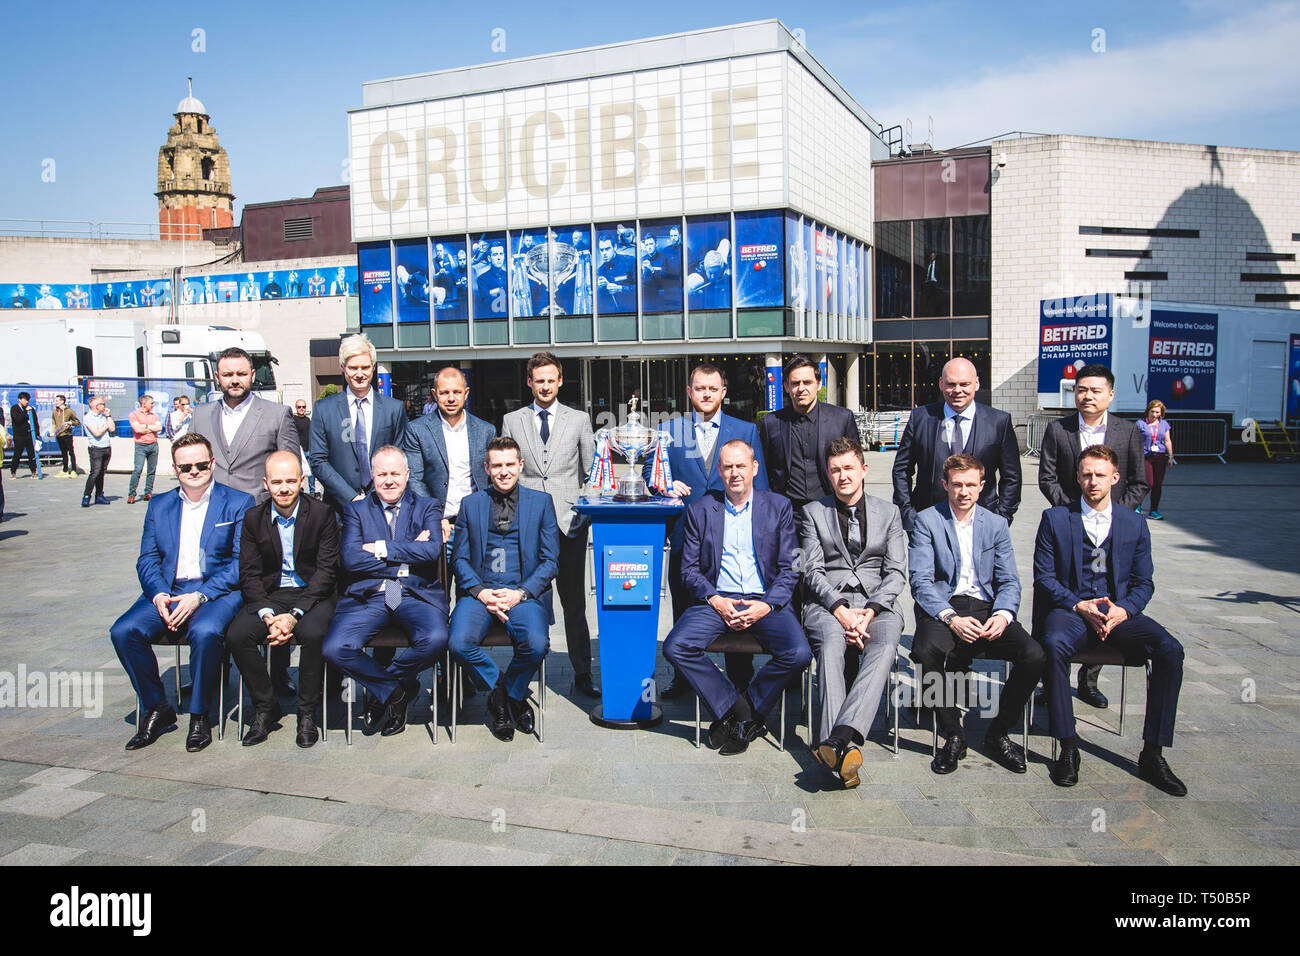 April 19, 2019 - Players pose in front of the Crucible Theatre at ...